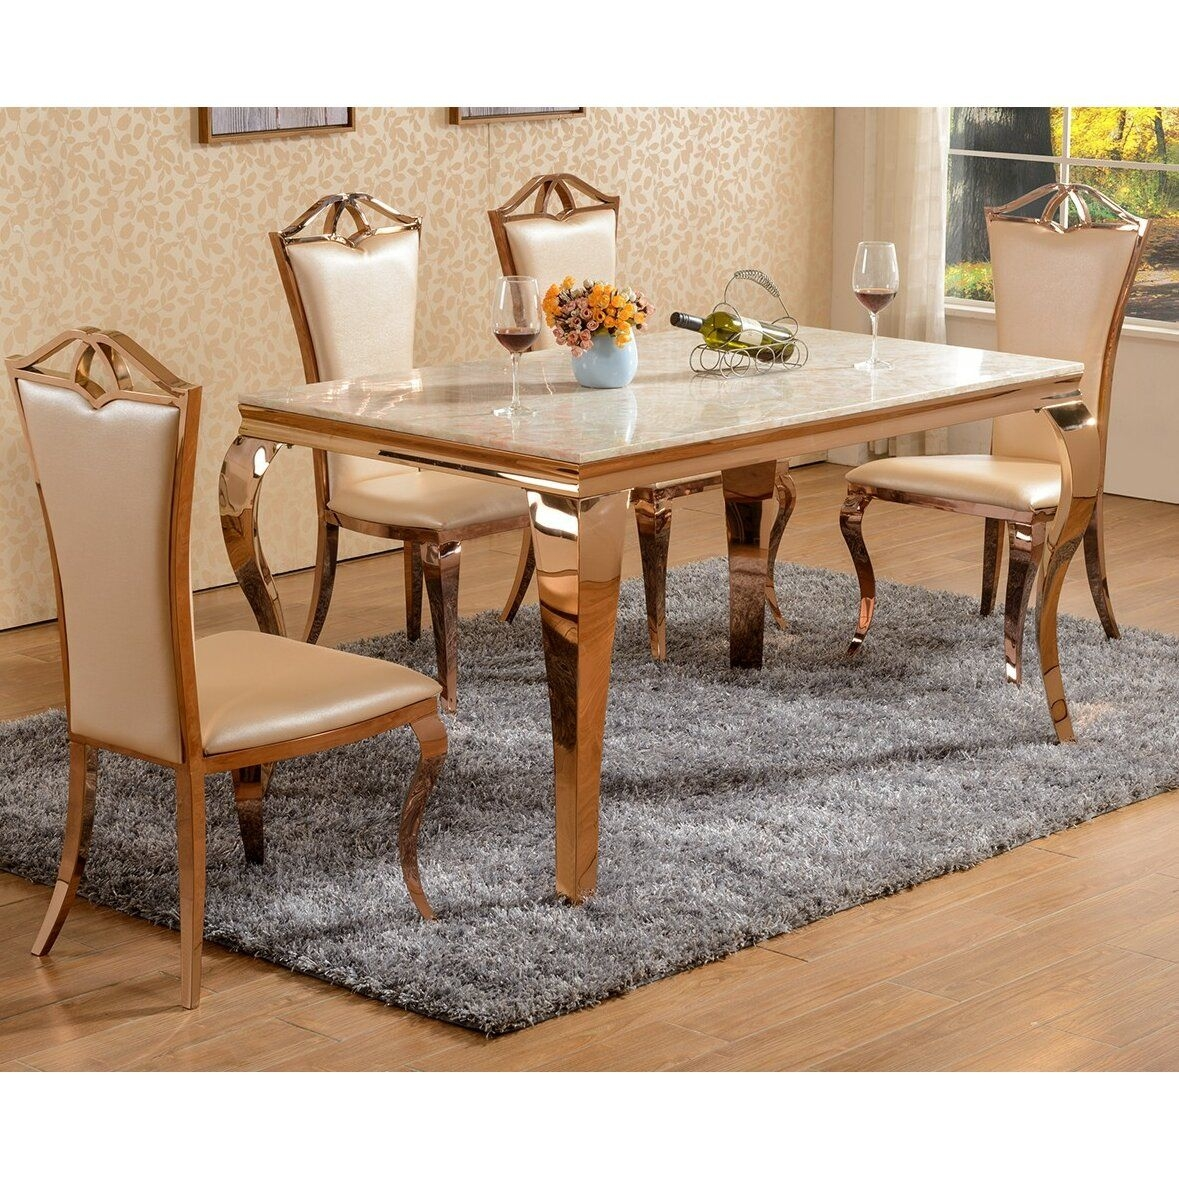 Derry'S Julia Dining Table And 6 Chairs  Wayfair Uk